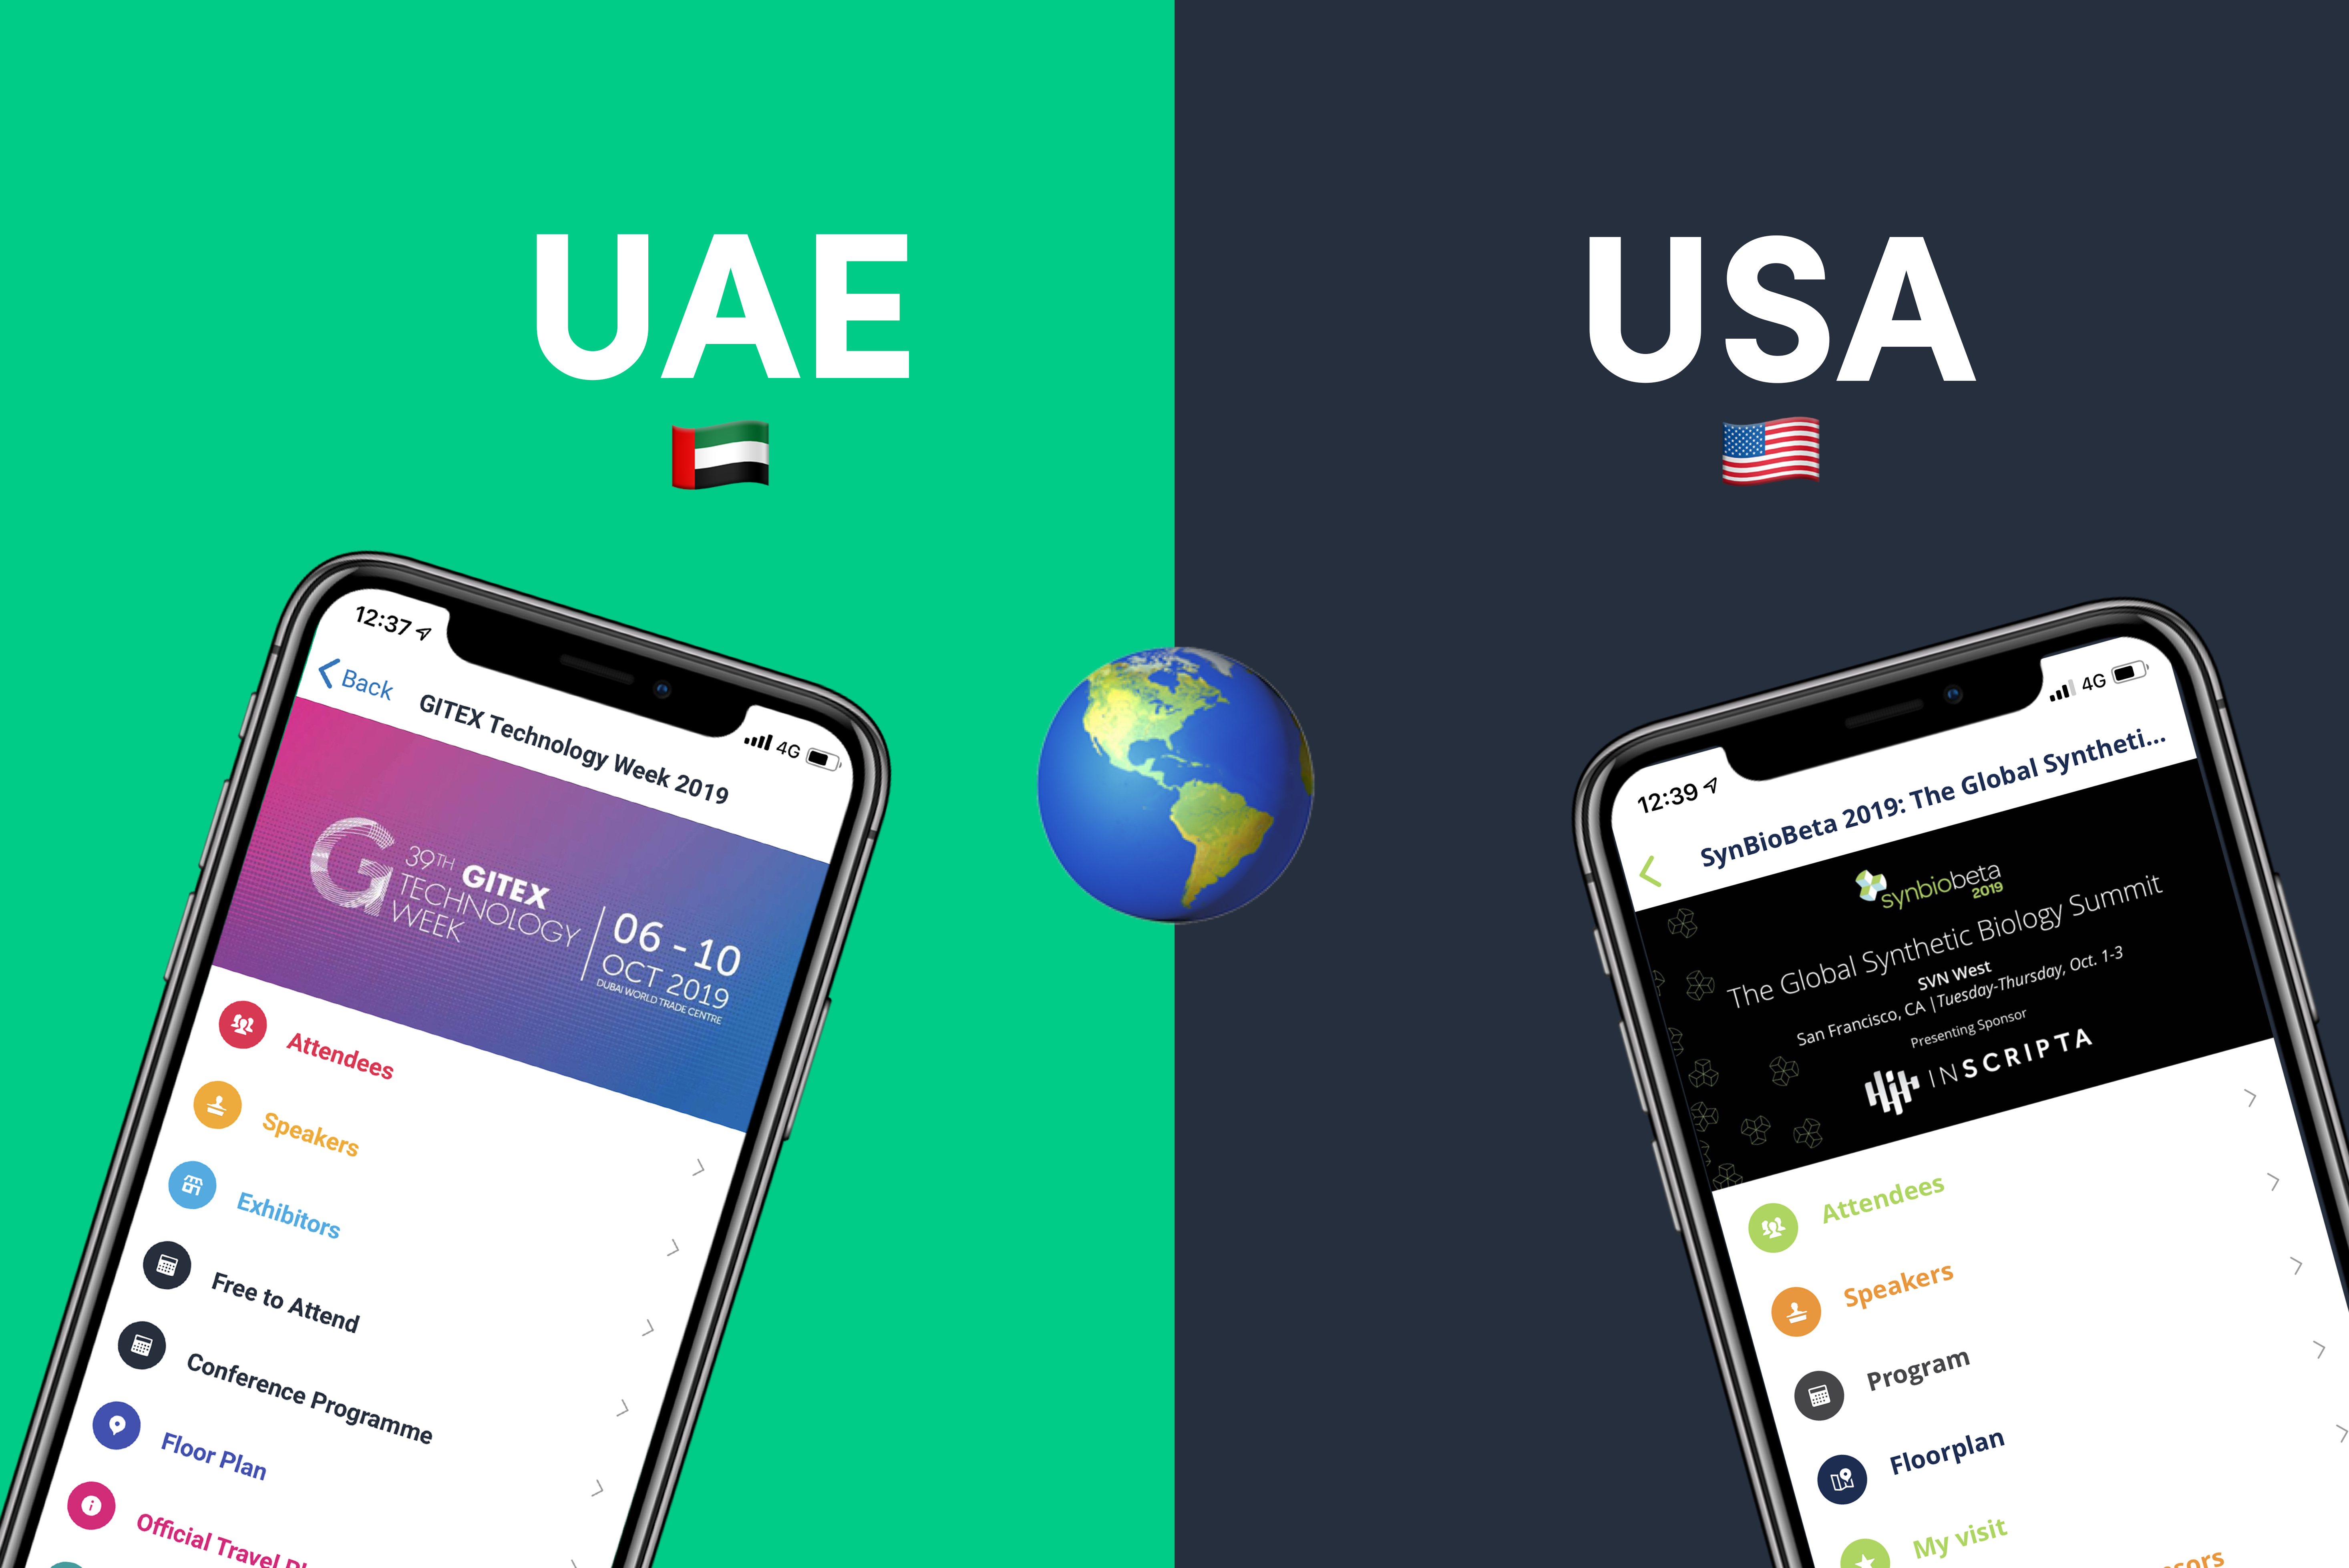 Event App Dubai & Seattle